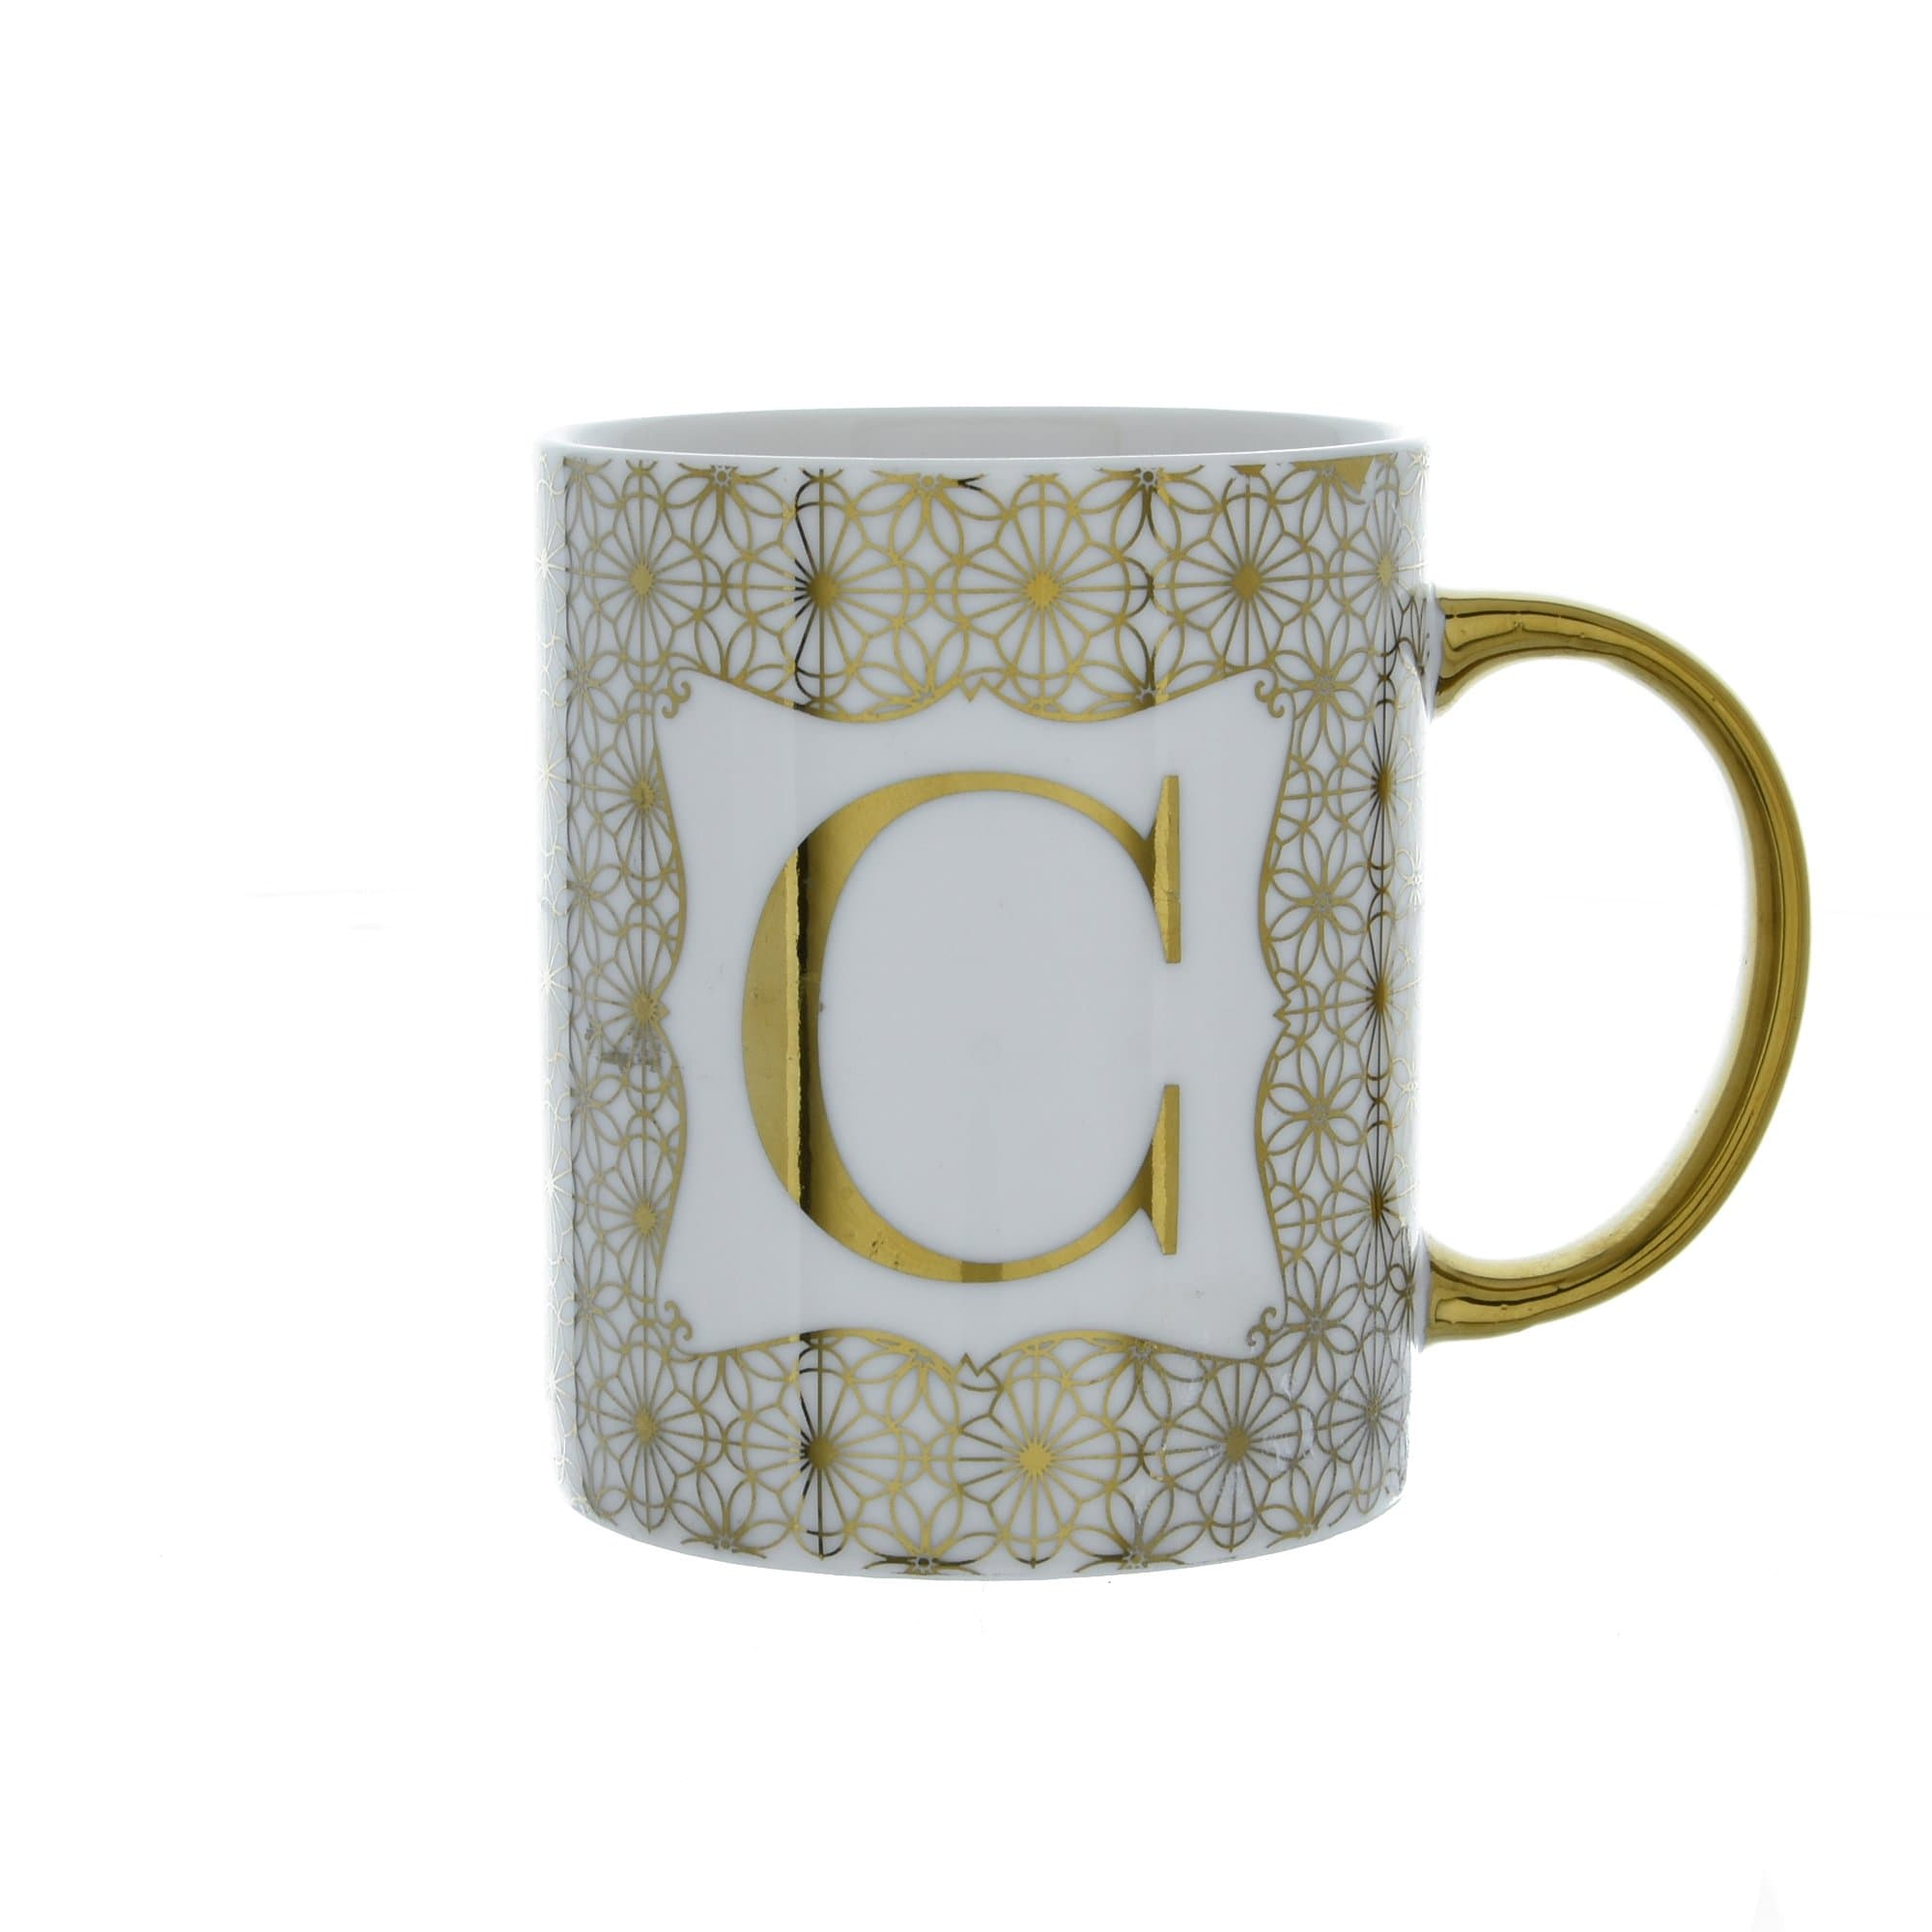 Candlelight Home Mugs Initial Straight Sided Mug C Gold 8cm 6PK